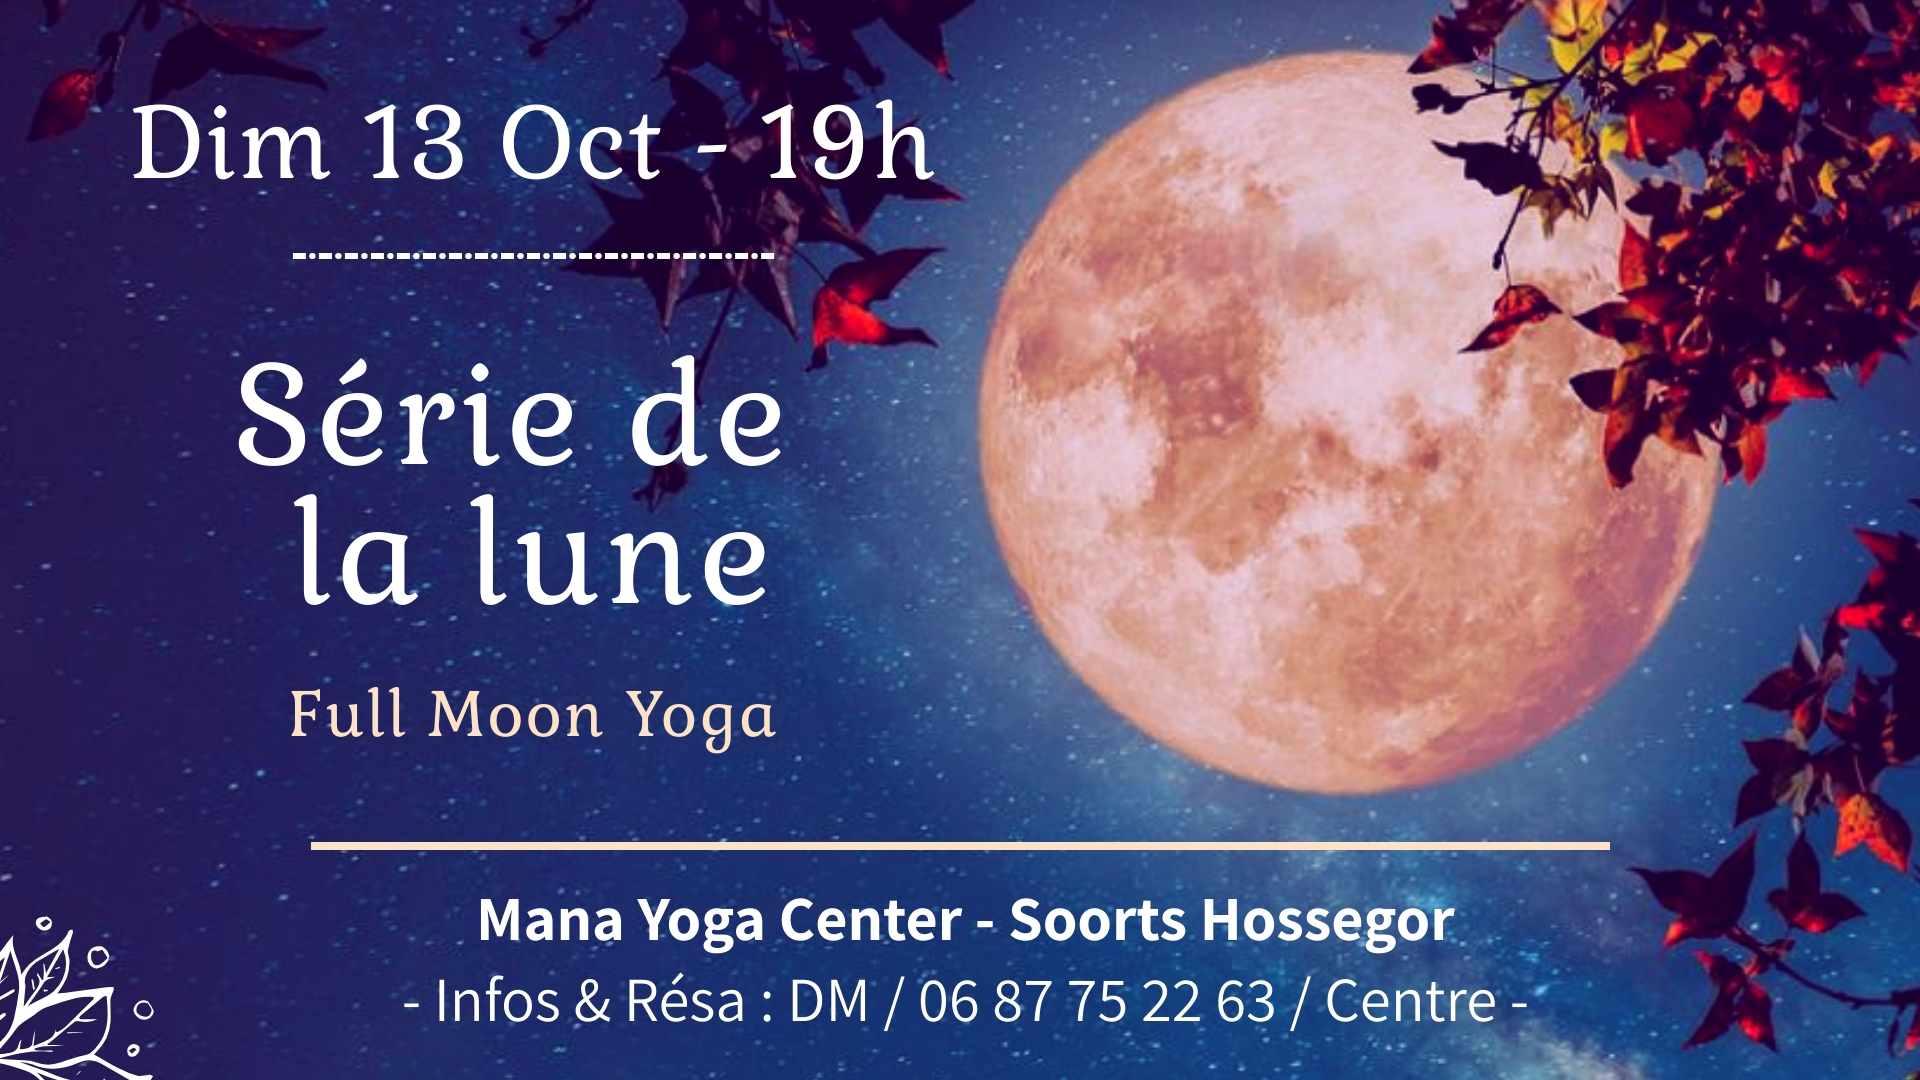 Serie de la Lune 13 oct 2019 - Soulshine Yoga Hossegor Mana Center